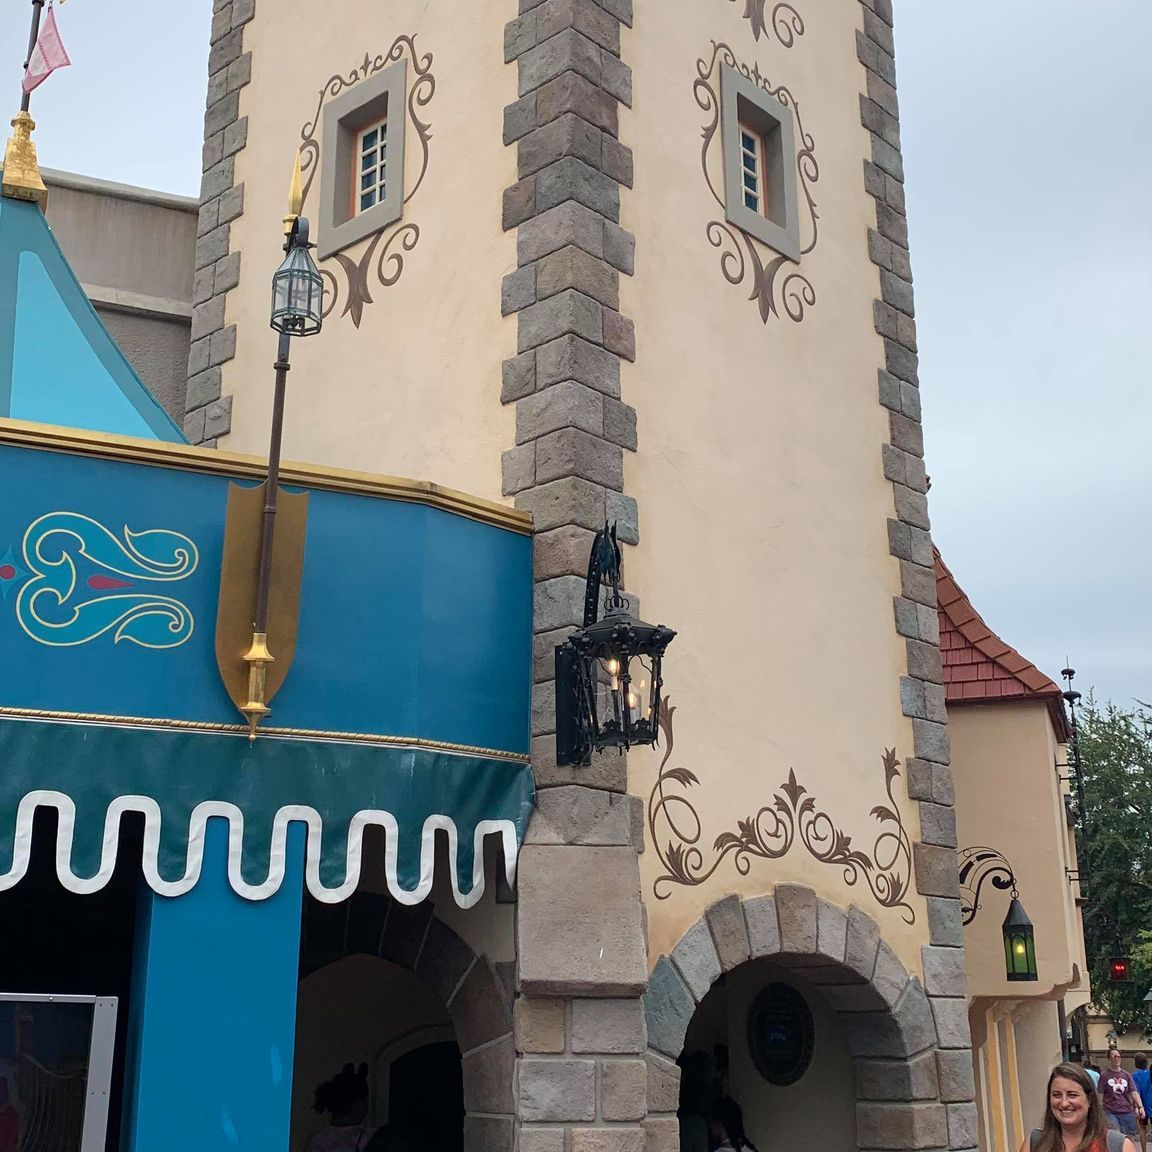 Scrim removed from Peter Pan's Flight in the Magic Kingdom 2